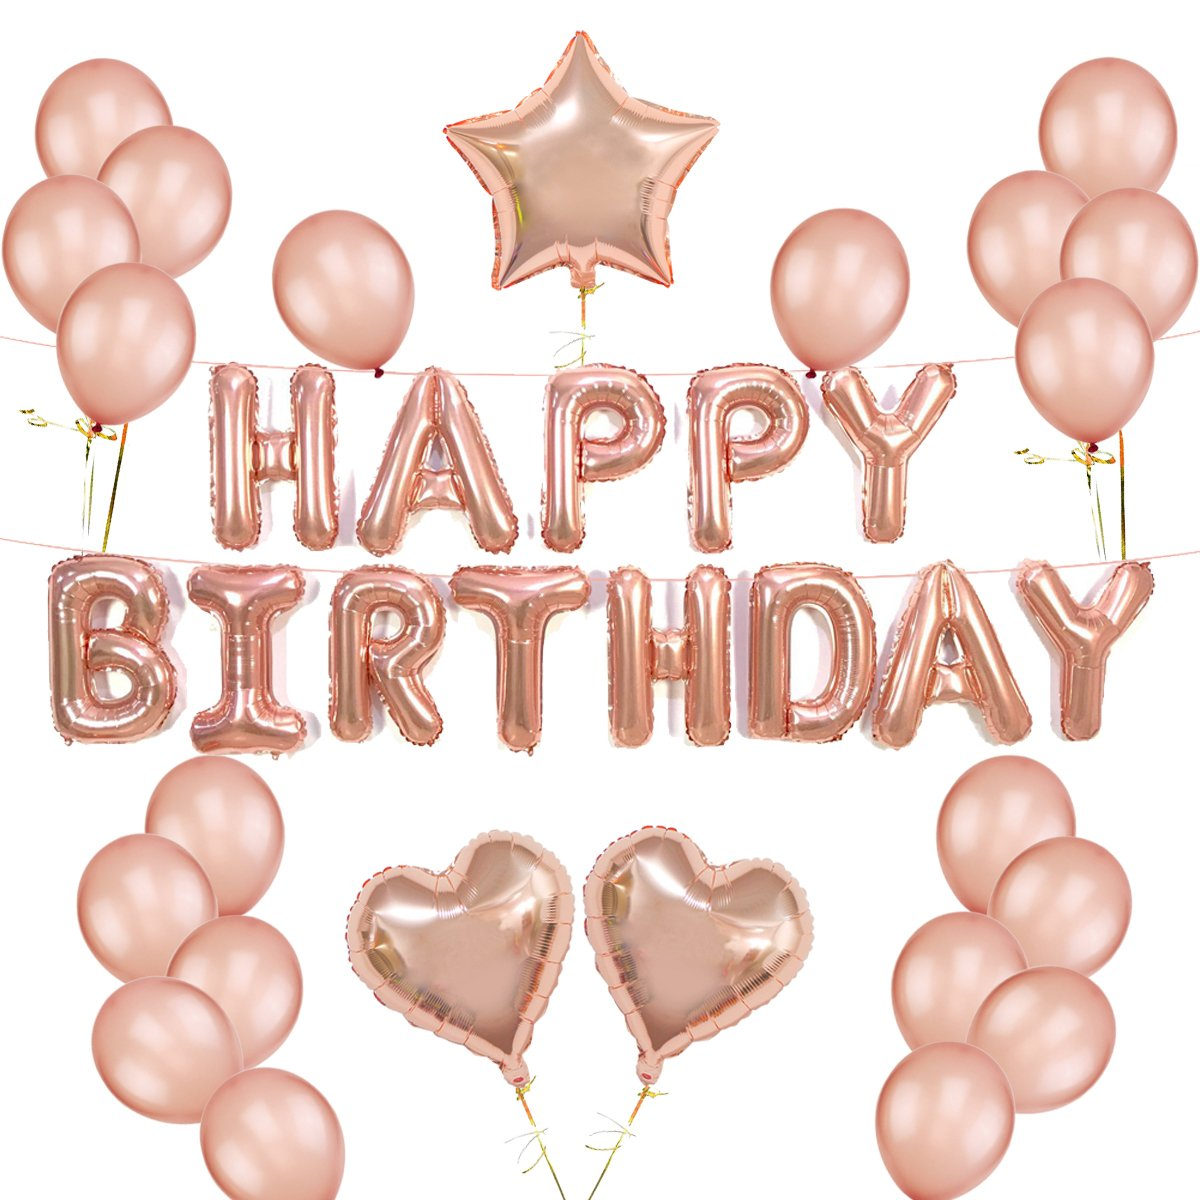 Rose Gold Balloons Decorations Set Happy Birthday Banner 12'' Rose Gold Balloon and Star Heart Foil Balloons with Gold String for Party Supplies